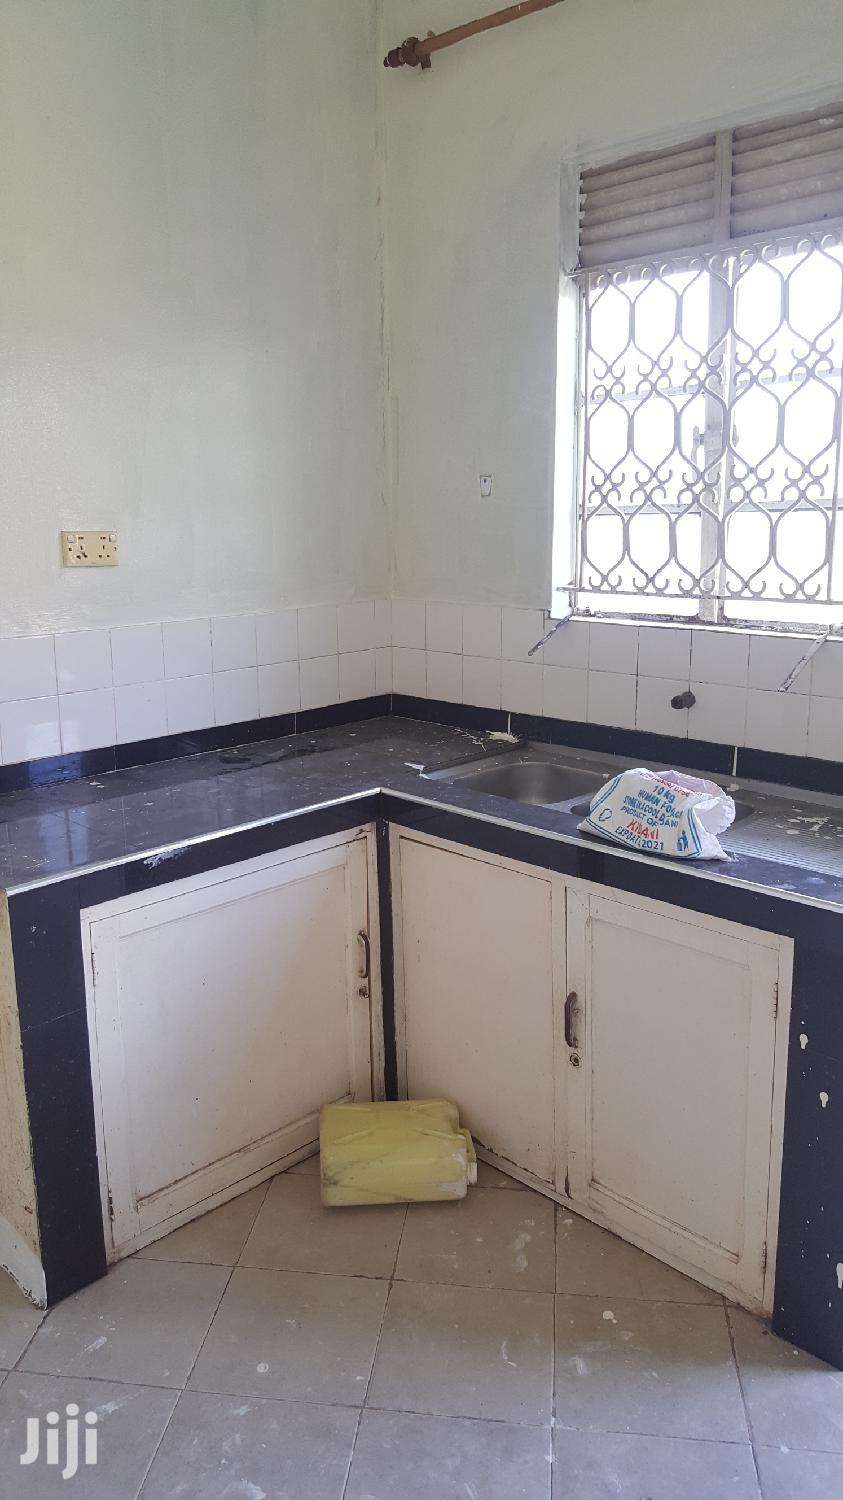 2 Bedroom for Rent in Kira Near the Main Road | Houses & Apartments For Rent for sale in Kampala, Central Region, Uganda